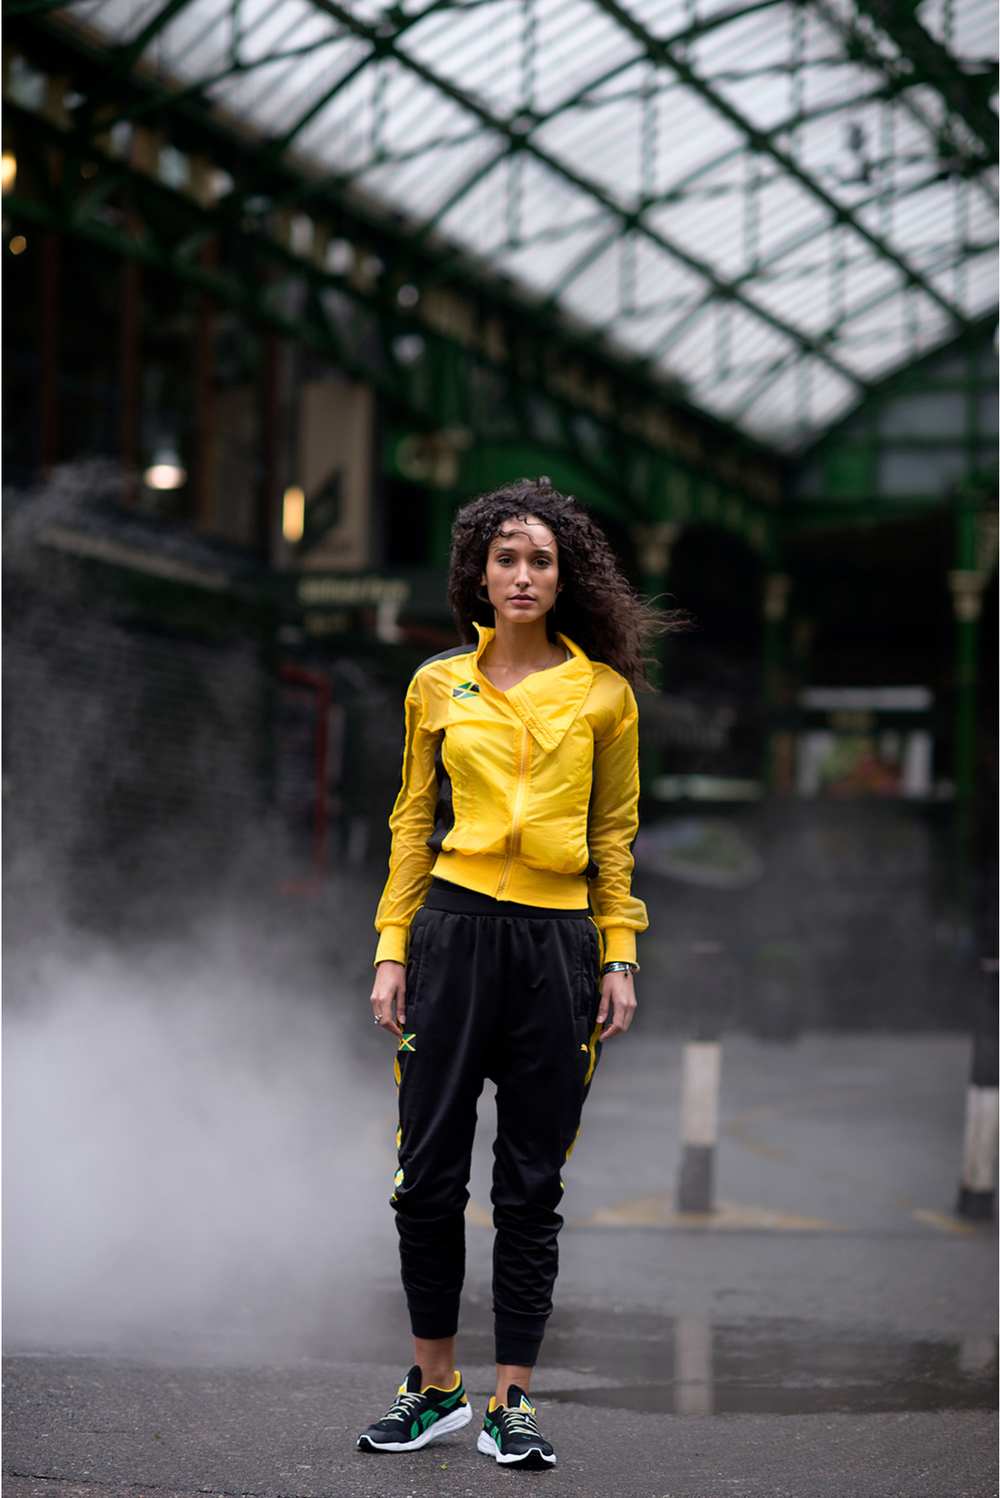 SYANNE, PHOTOGRAPHED FOR PUMA, LONDON, 2013